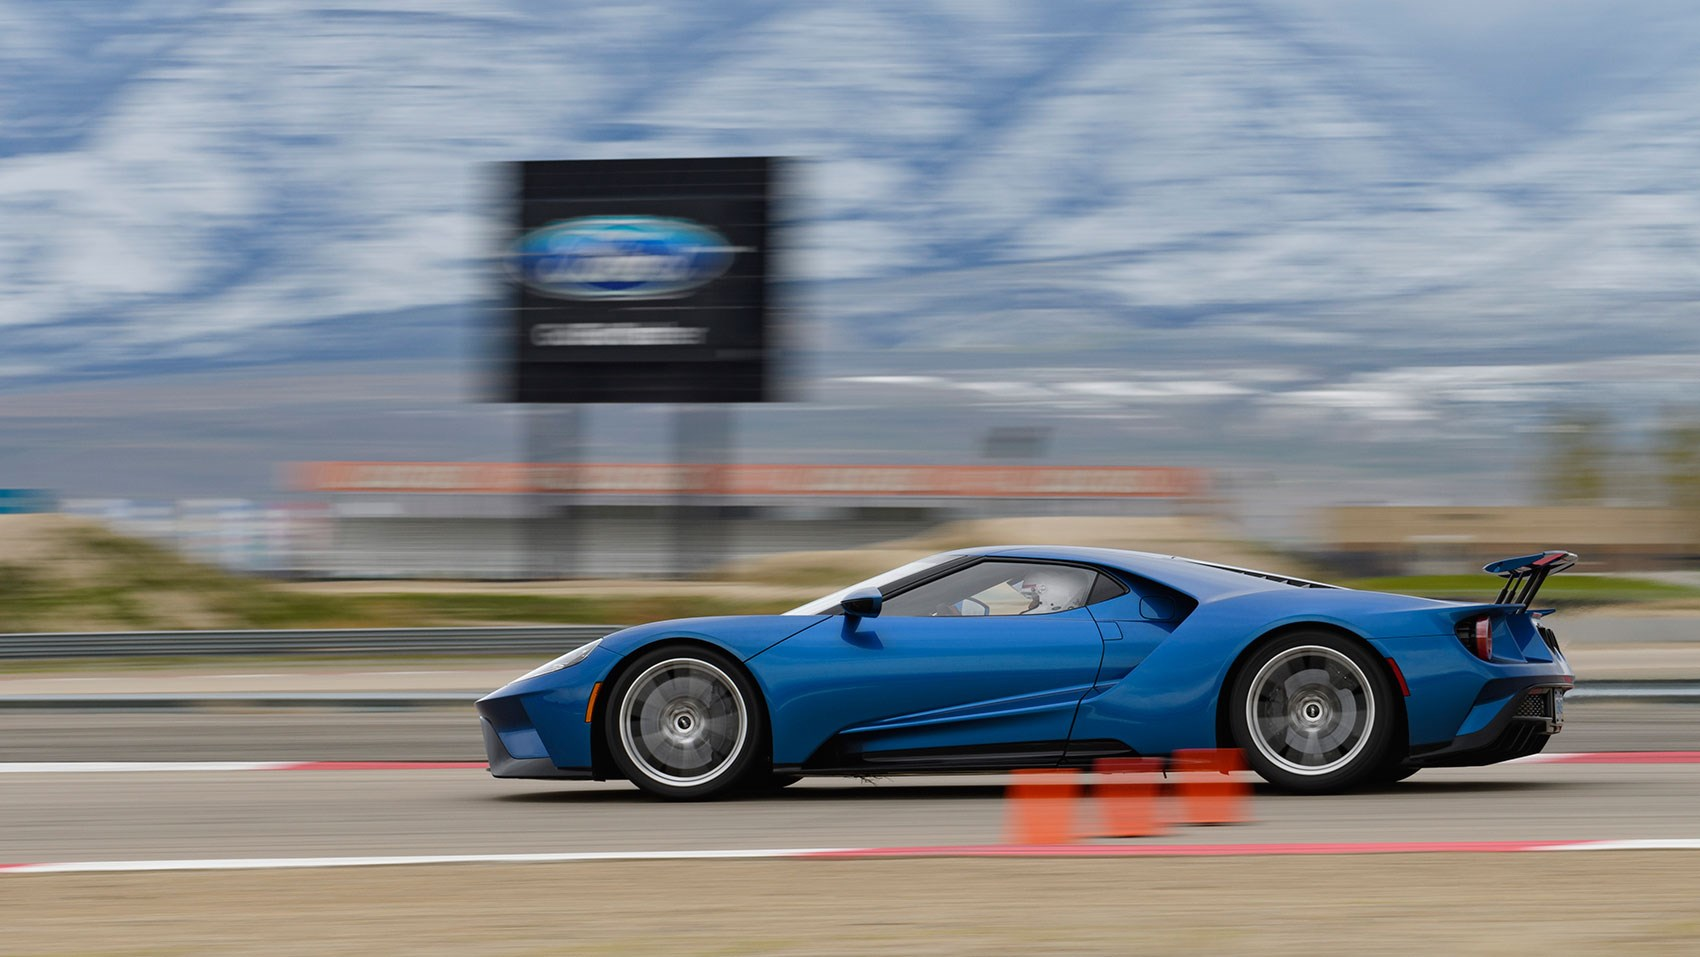 We Drove The New Ford Gt On Road And Track